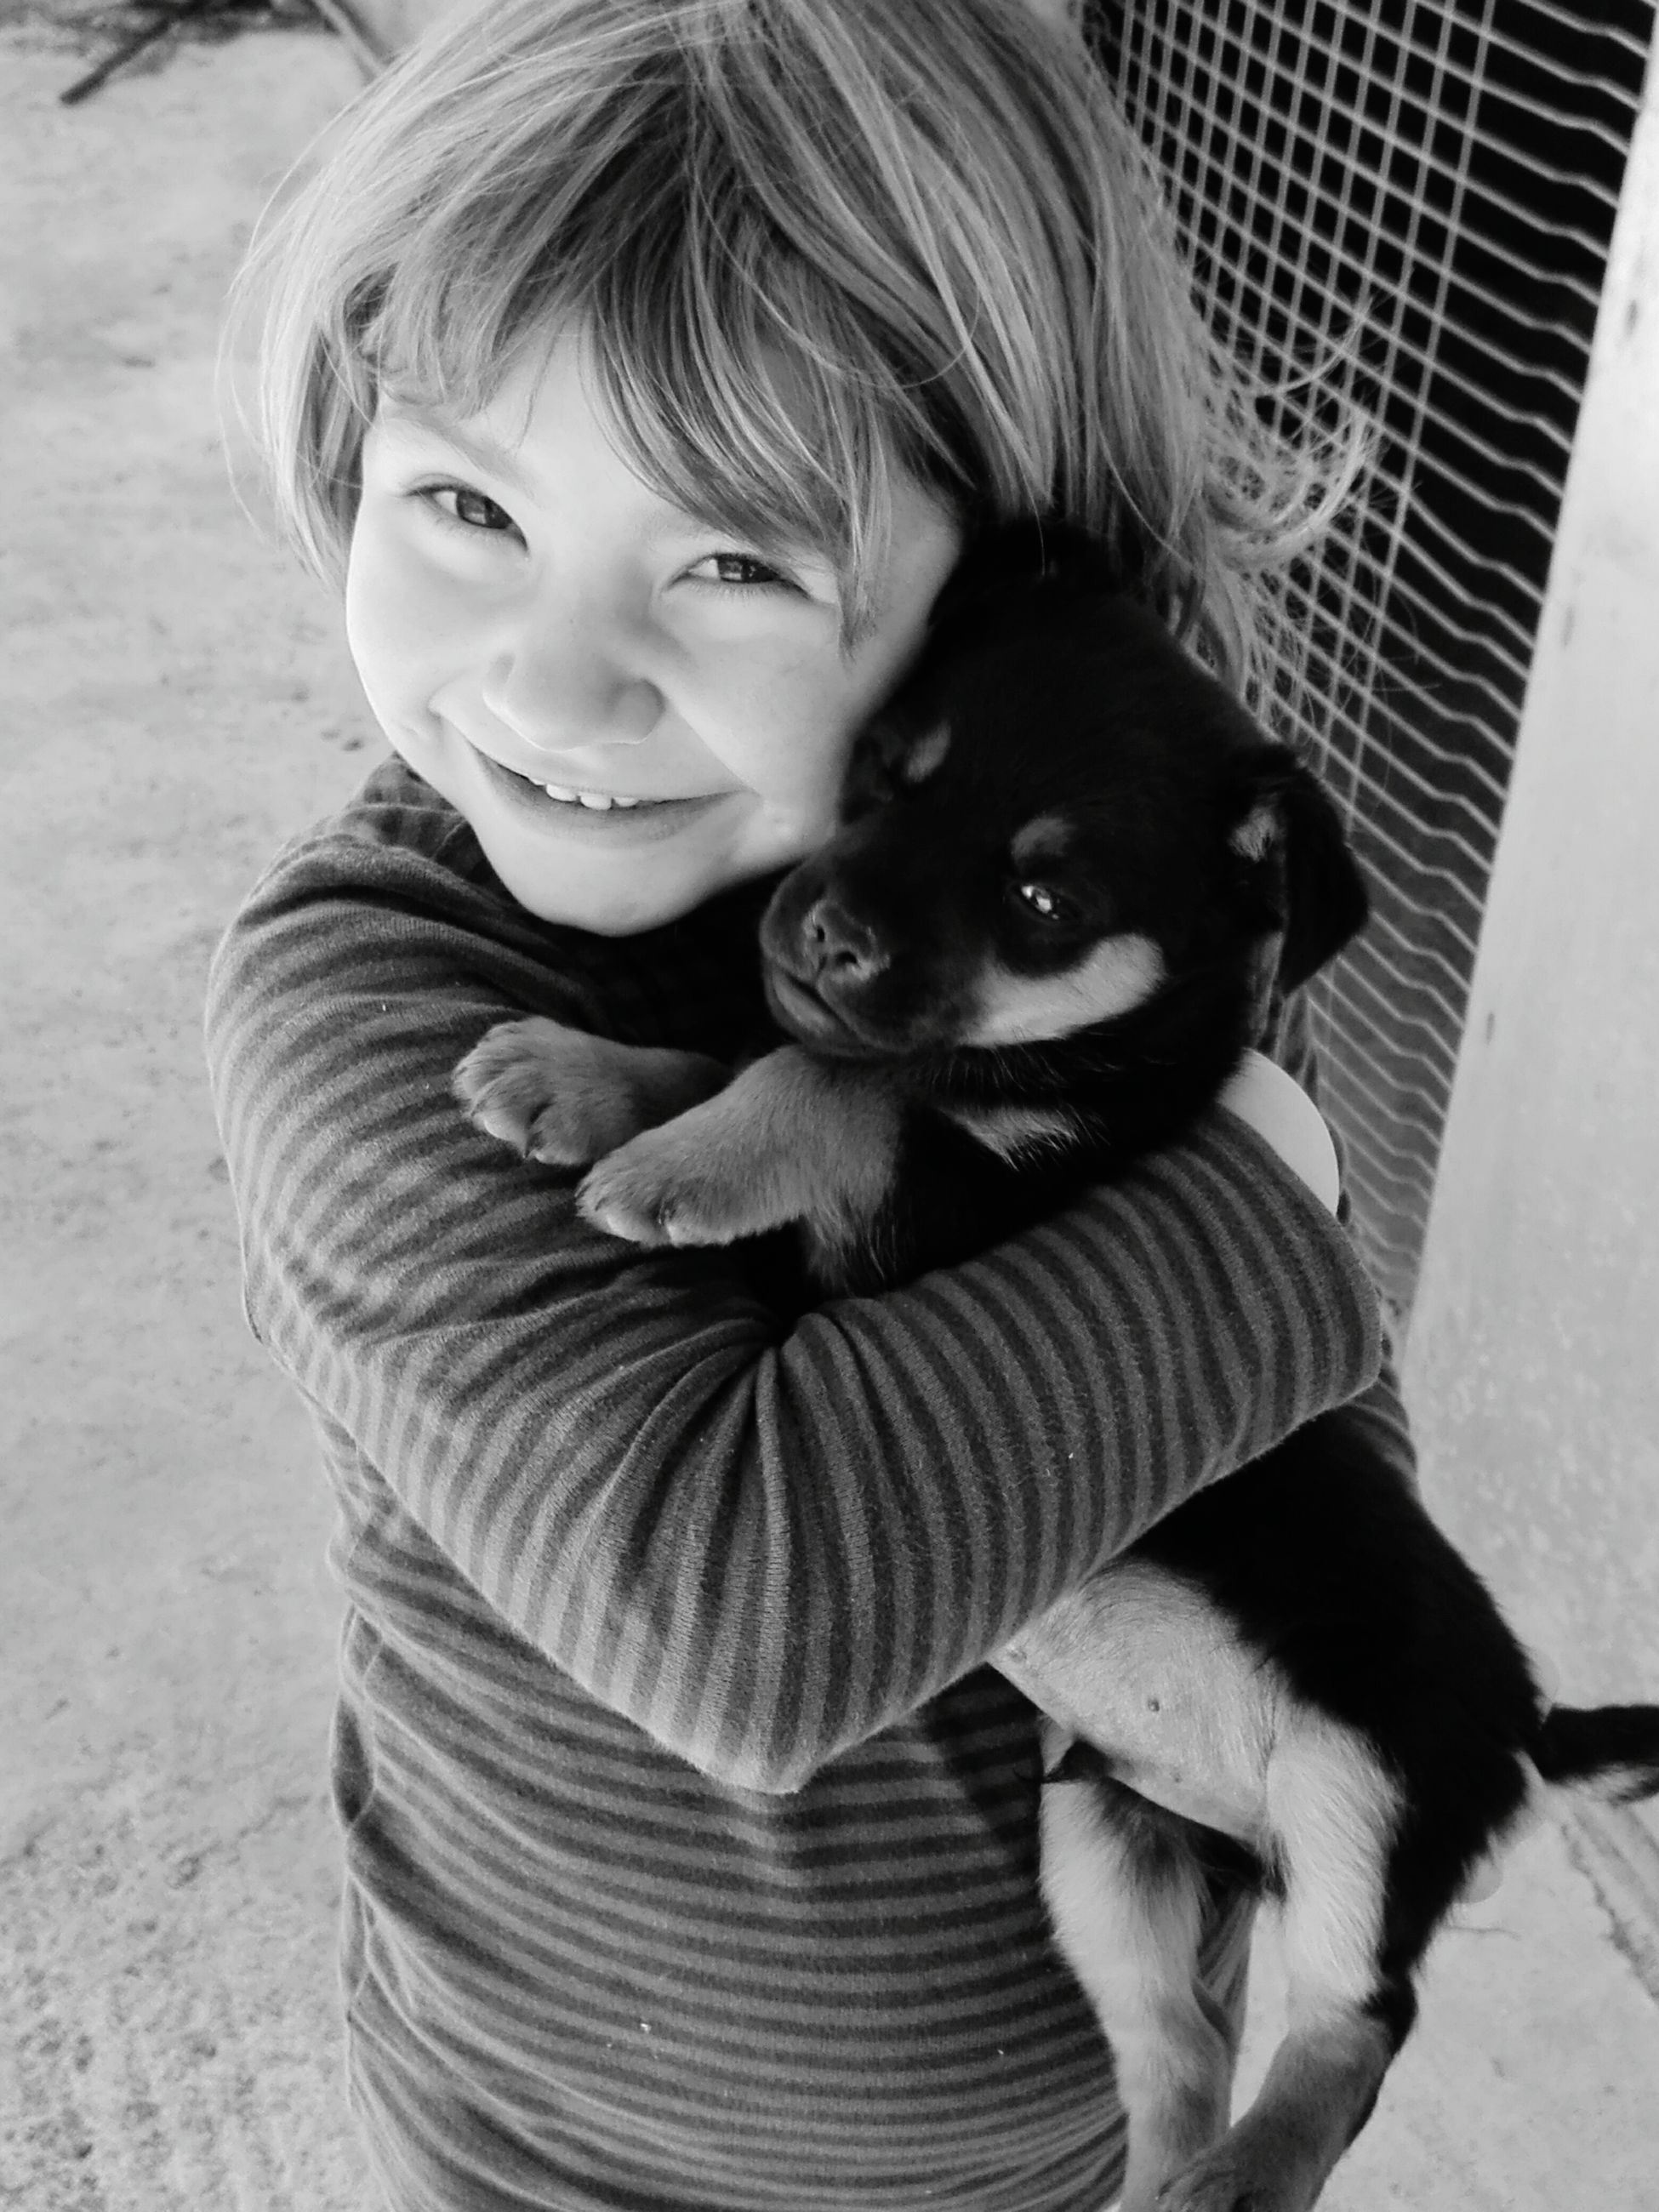 love, innocence, portrait, smiling, one animal, childhood, embracing, happiness, domestic animals, lifestyles, pets, animal themes, real people, one person, cheerful, day, mammal, close-up, people, outdoors, hugging